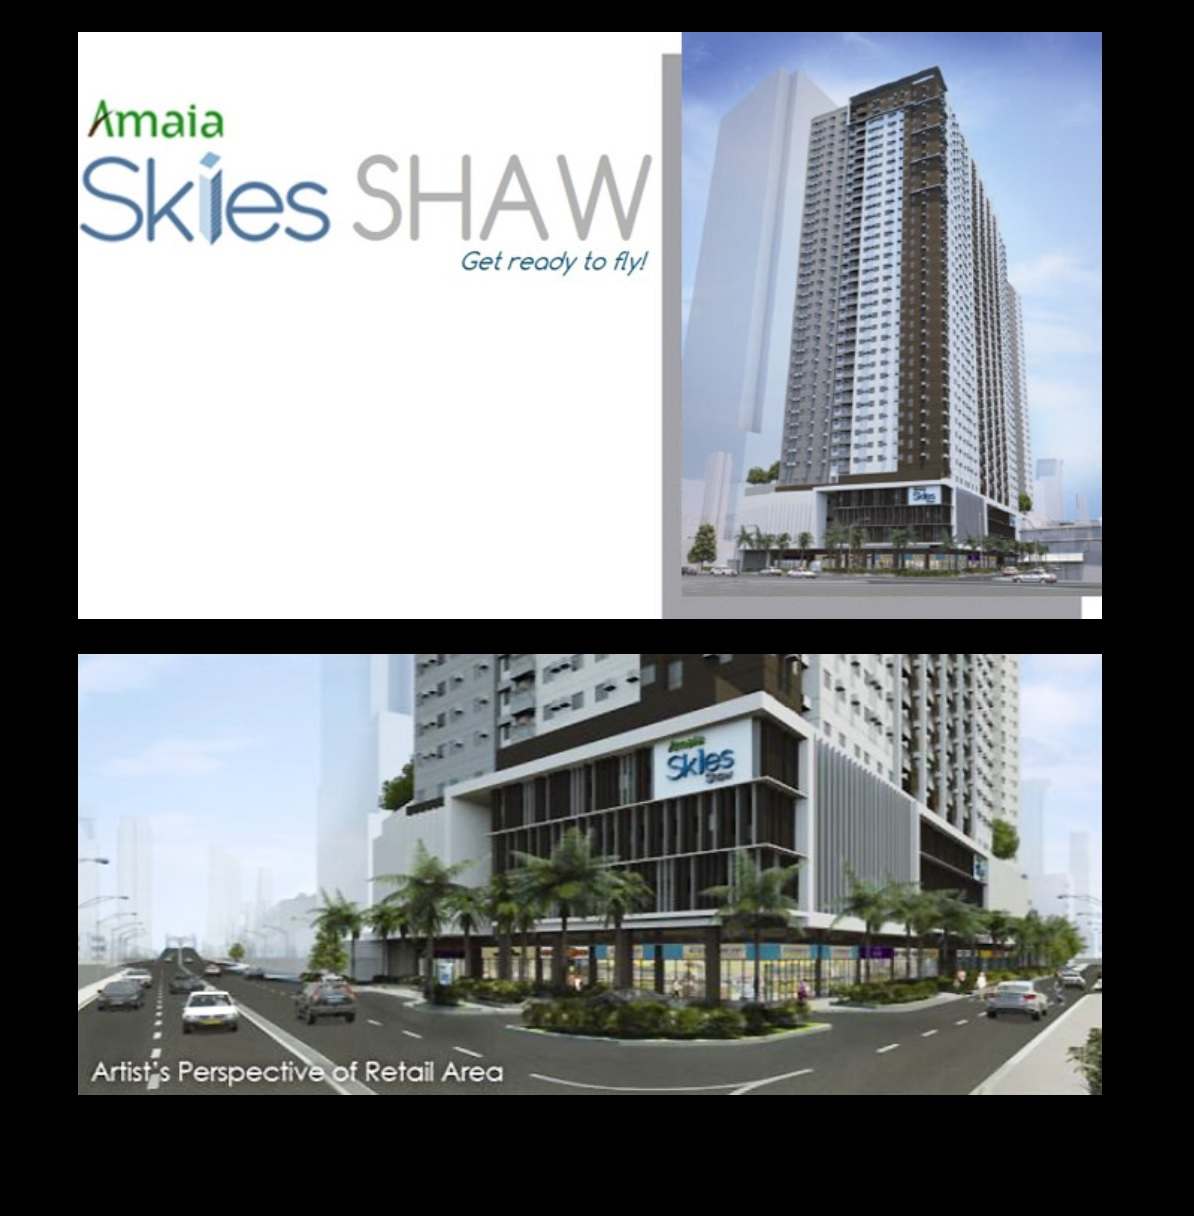 Condo near Shangrila and megamall Amaia skies photo